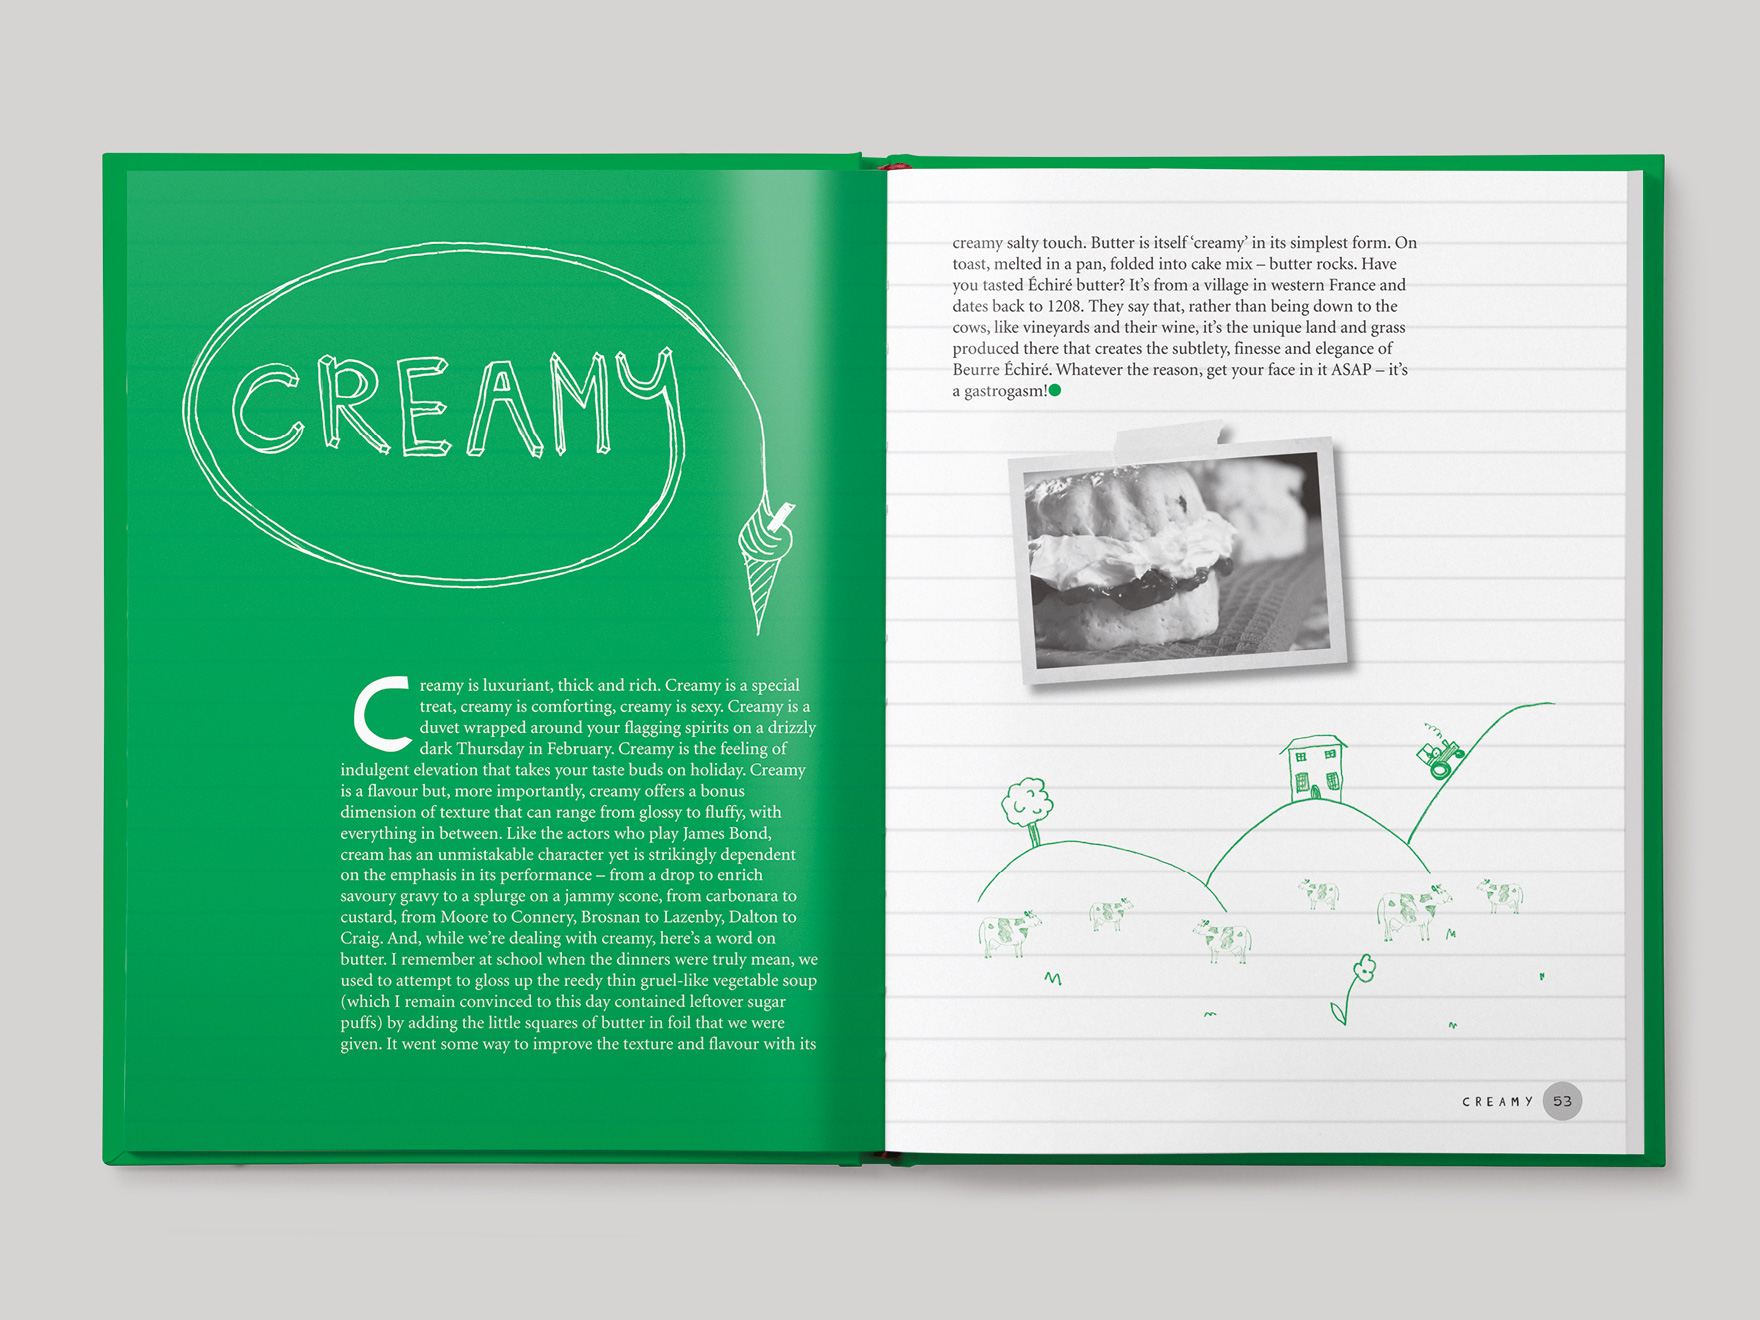 Inside book pages from Olly Smith's Eat & Drink recipe book showing the opener to the chapter about cream